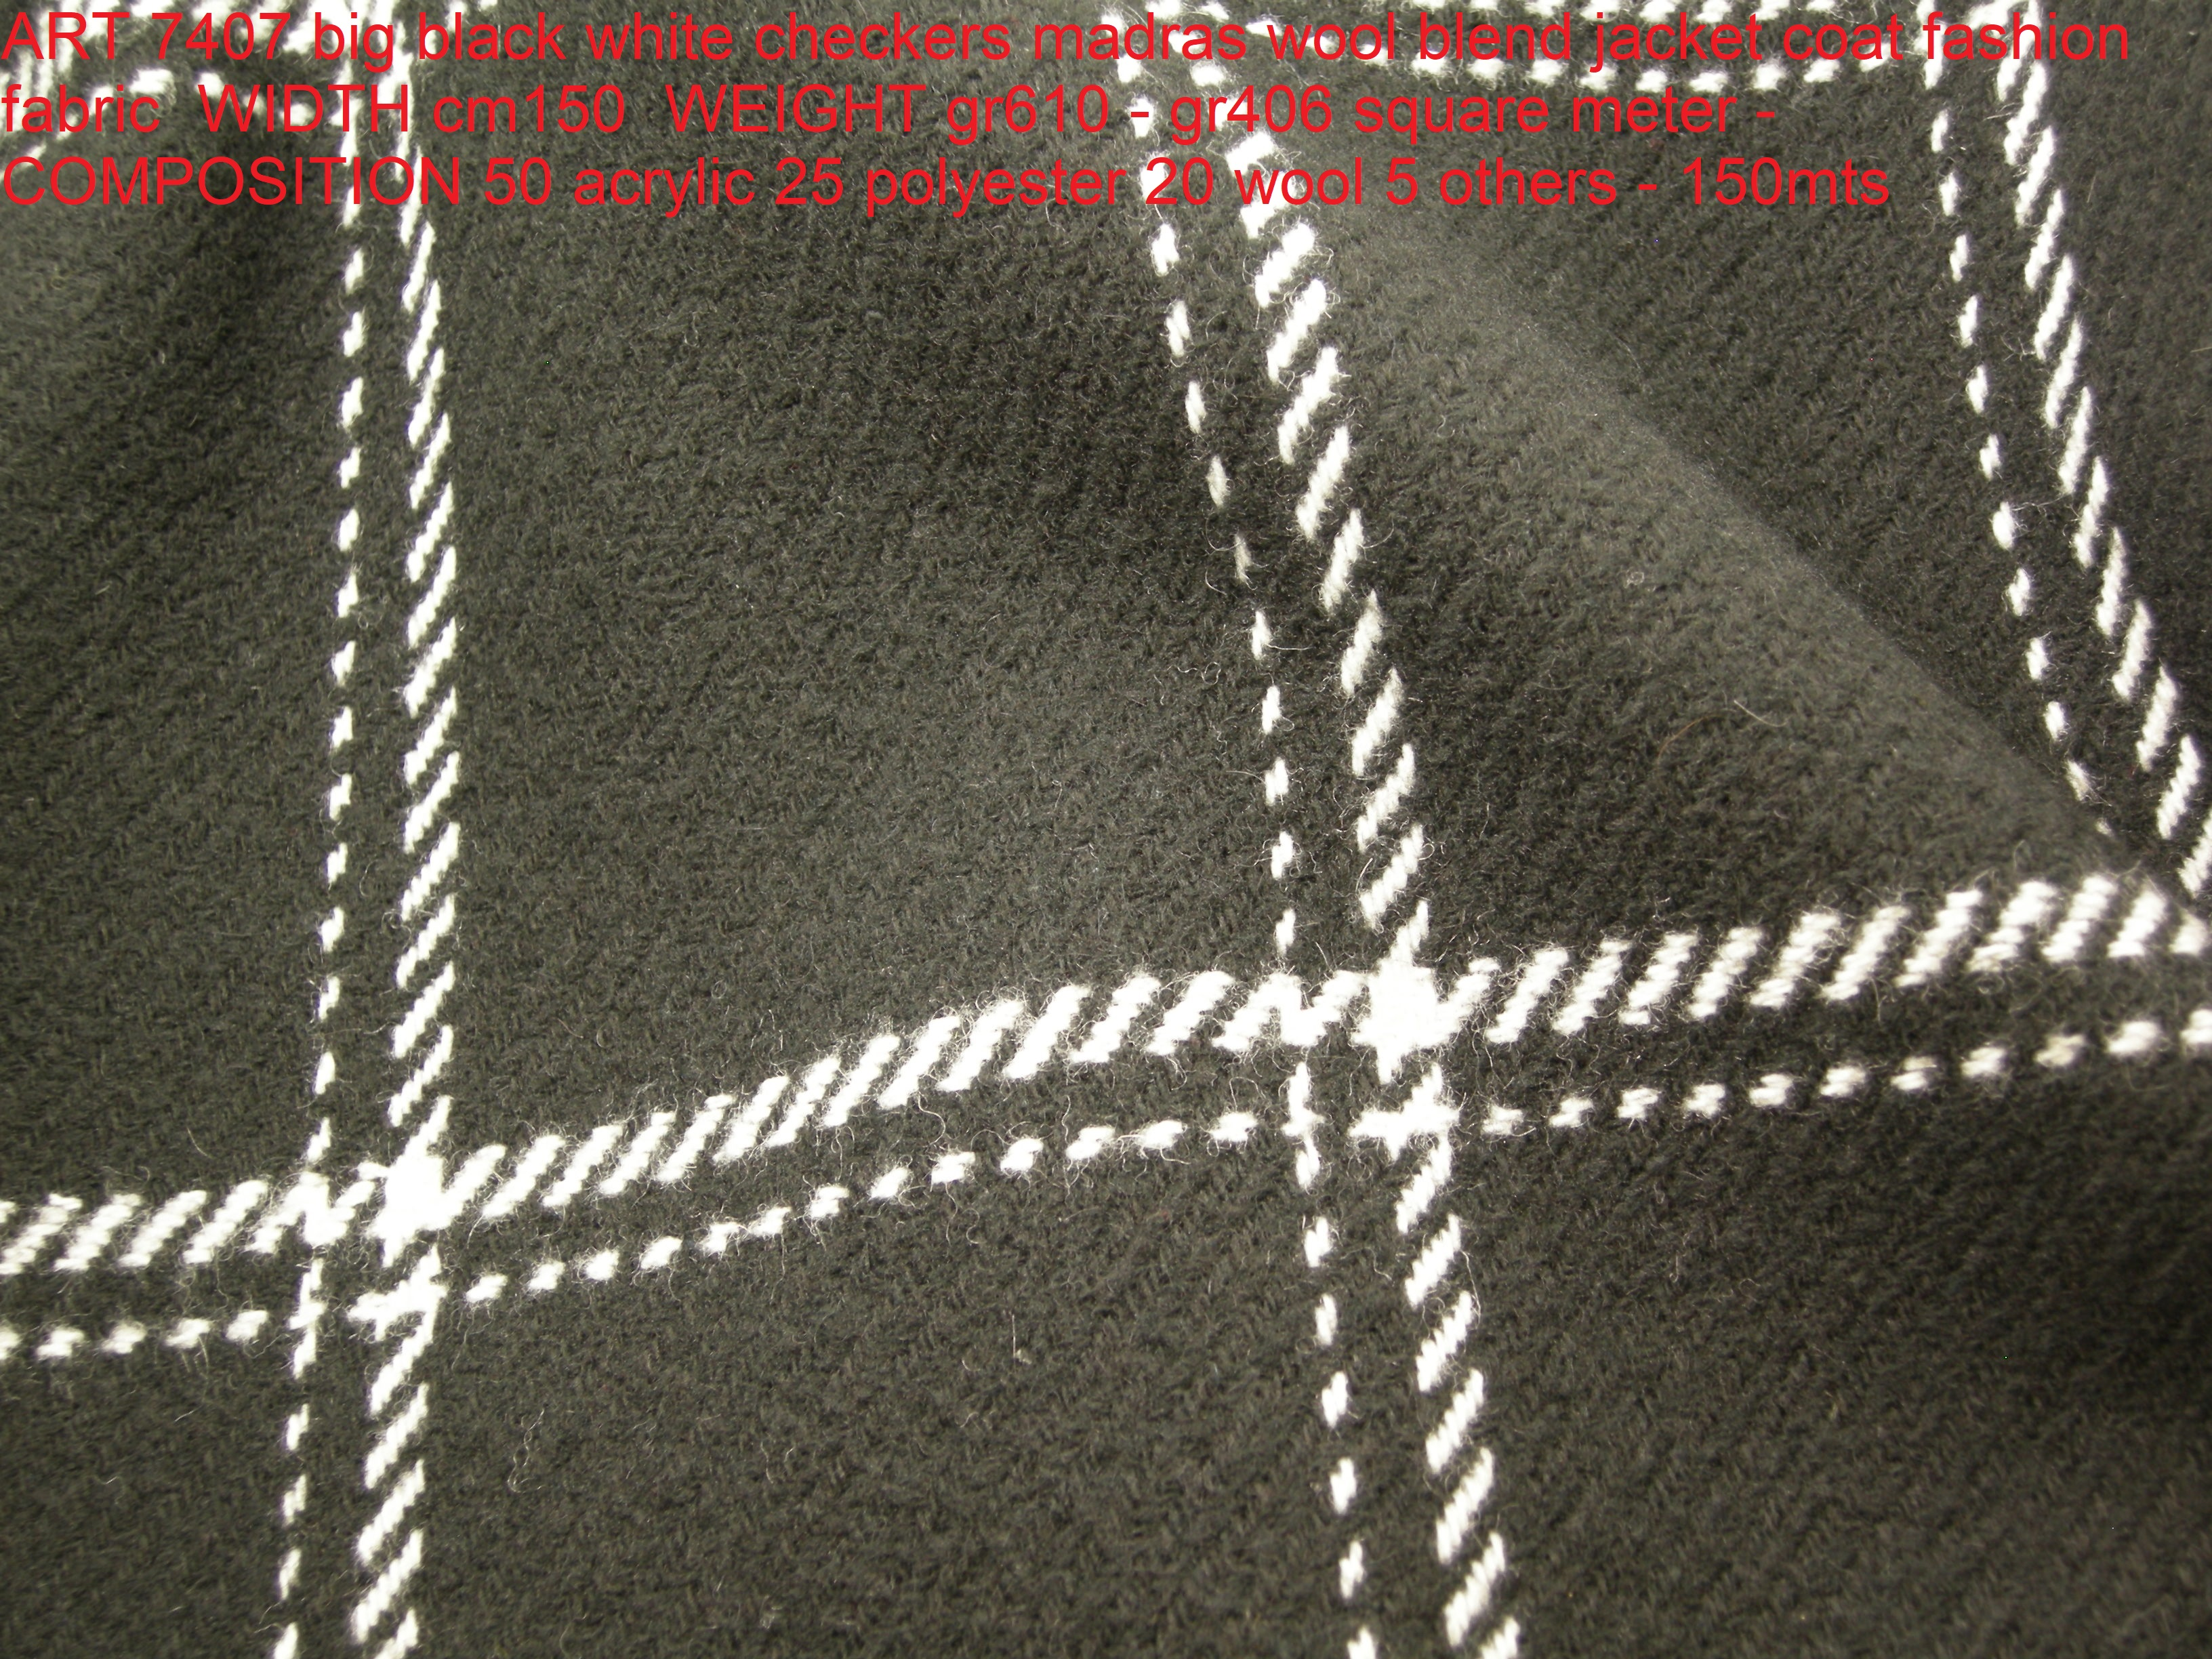 ART 7407 big black white checkers madras wool blend jacket coat fashion fabric WIDTH cm150 WEIGHT gr610 - gr406 square meter - COMPOSITION 50 acrylic 25 polyester 20 wool 5 others - 150mts